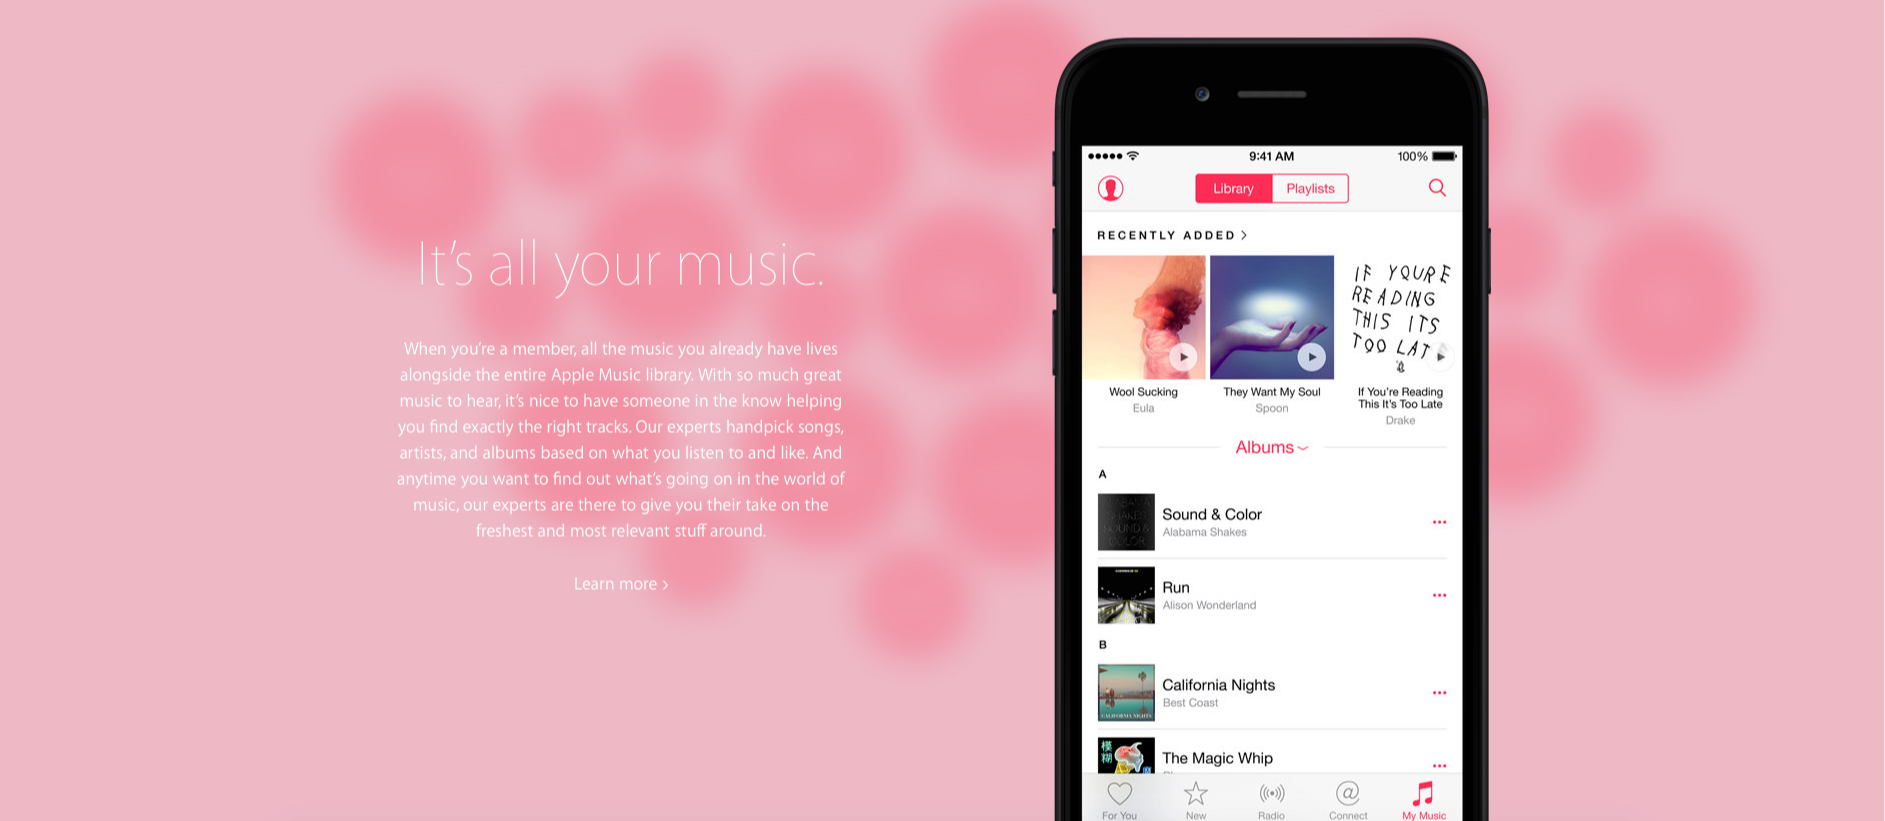 Jimmy Iovine and Eddy Cue discuss Apple Music in a new interview